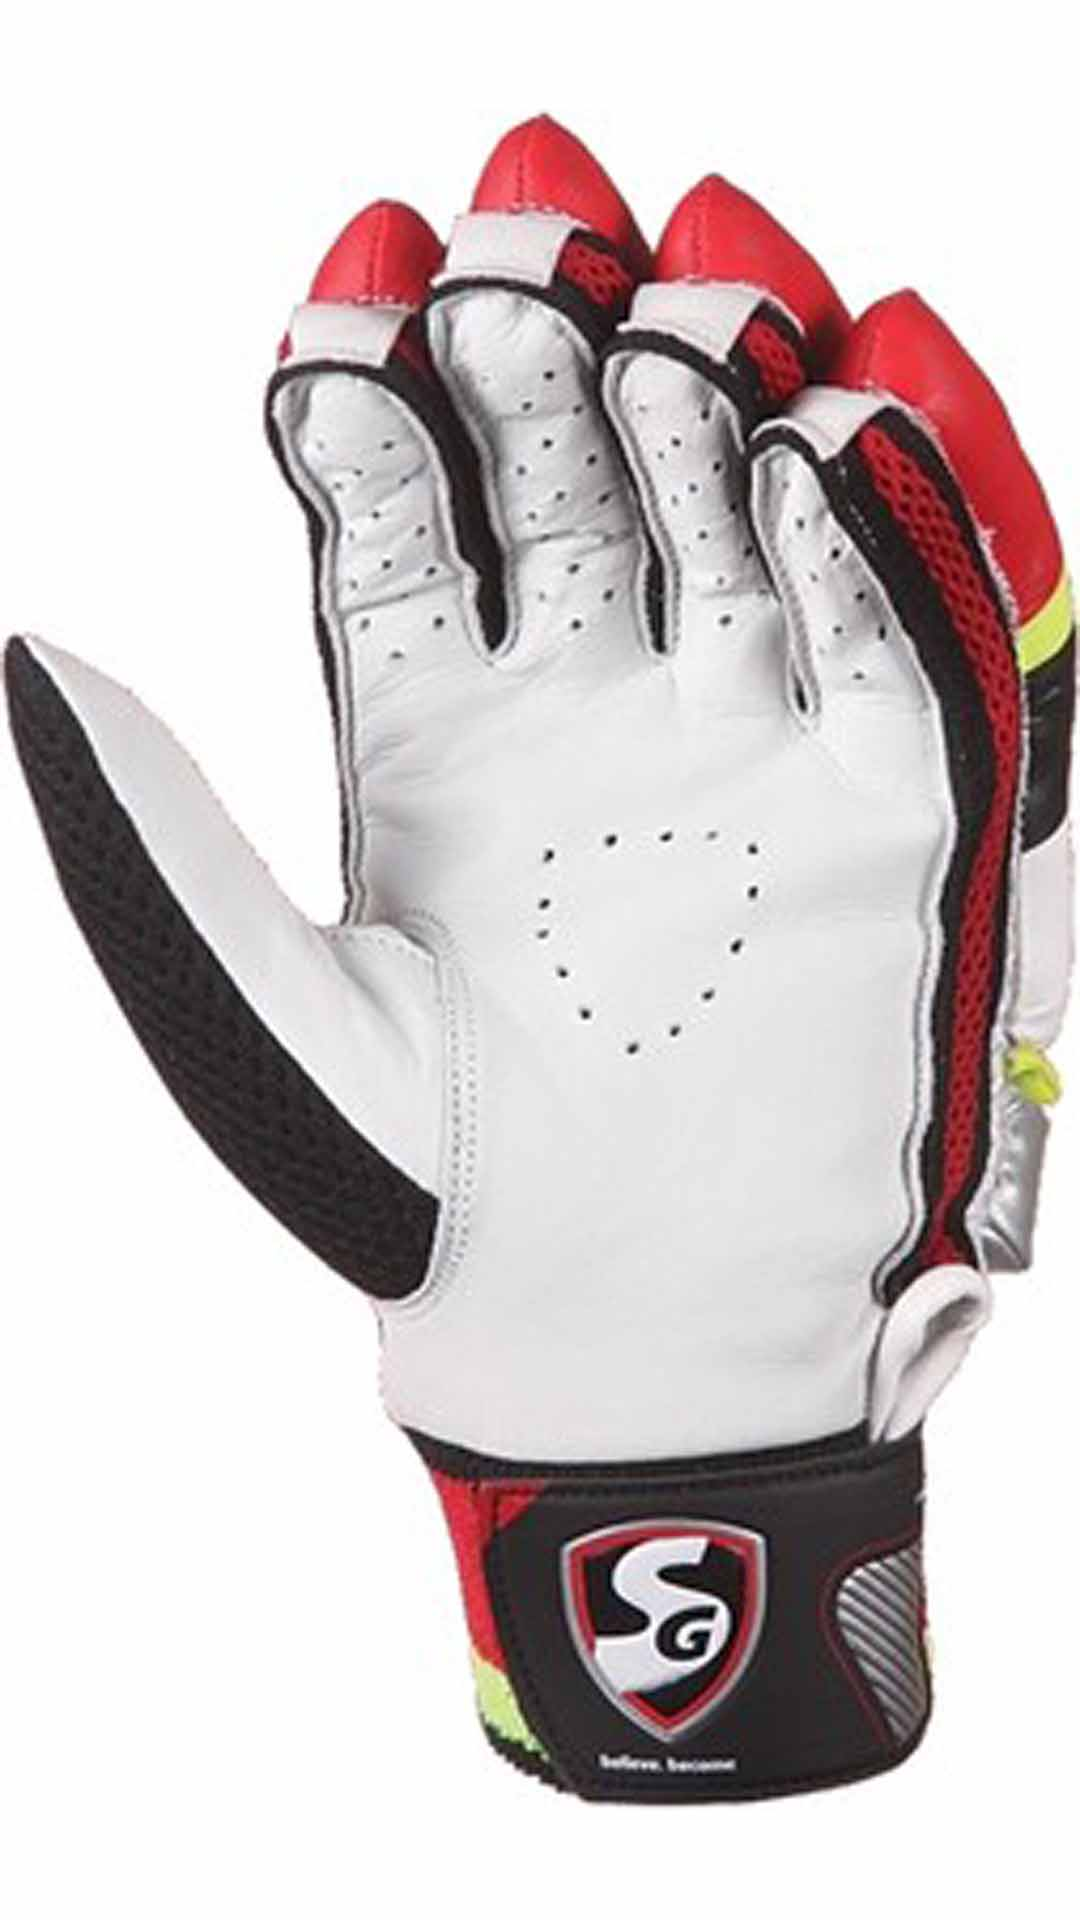 Sg League Batting Gloves-Multicolor